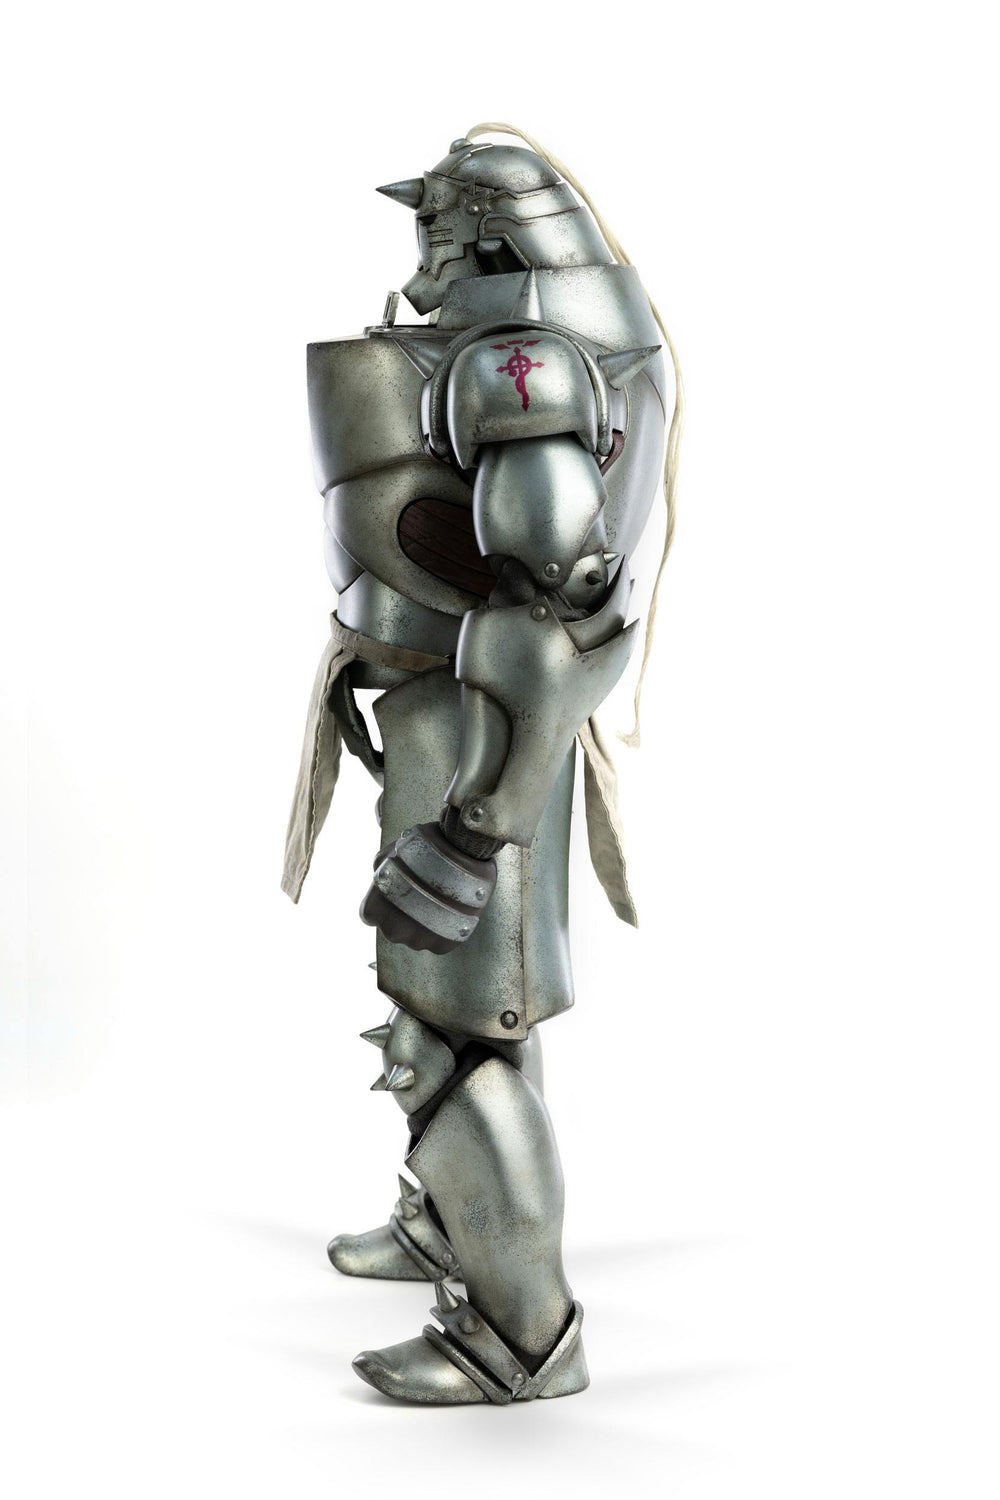 Threezero Fullmetal Alchemist: Brotherhood Alphonse Elric 1/6 Action Figure